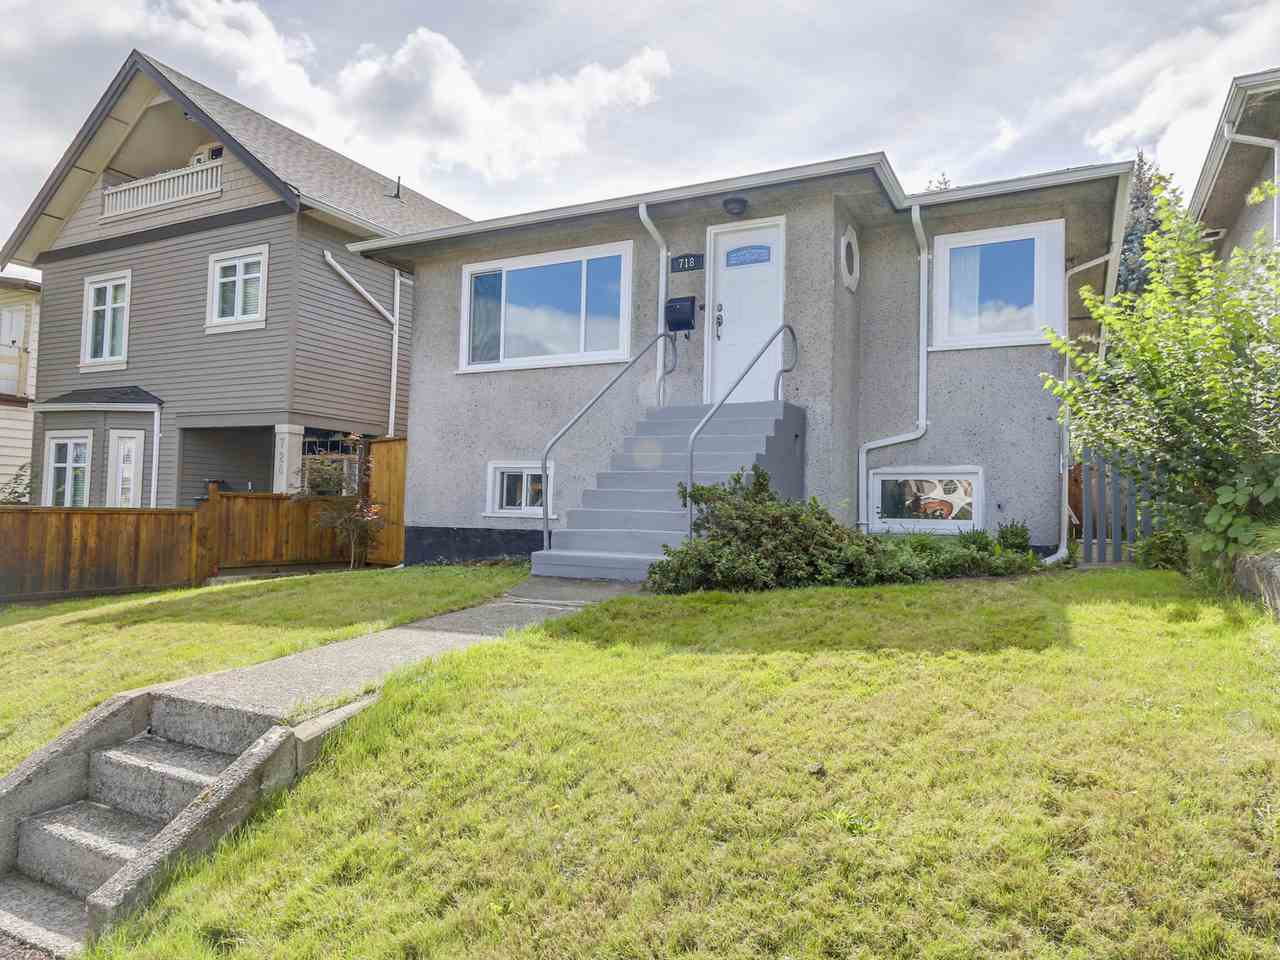 Photo 2: 718 E 12TH Avenue in Vancouver: Mount Pleasant VE House for sale (Vancouver East)  : MLS(r) # R2107688